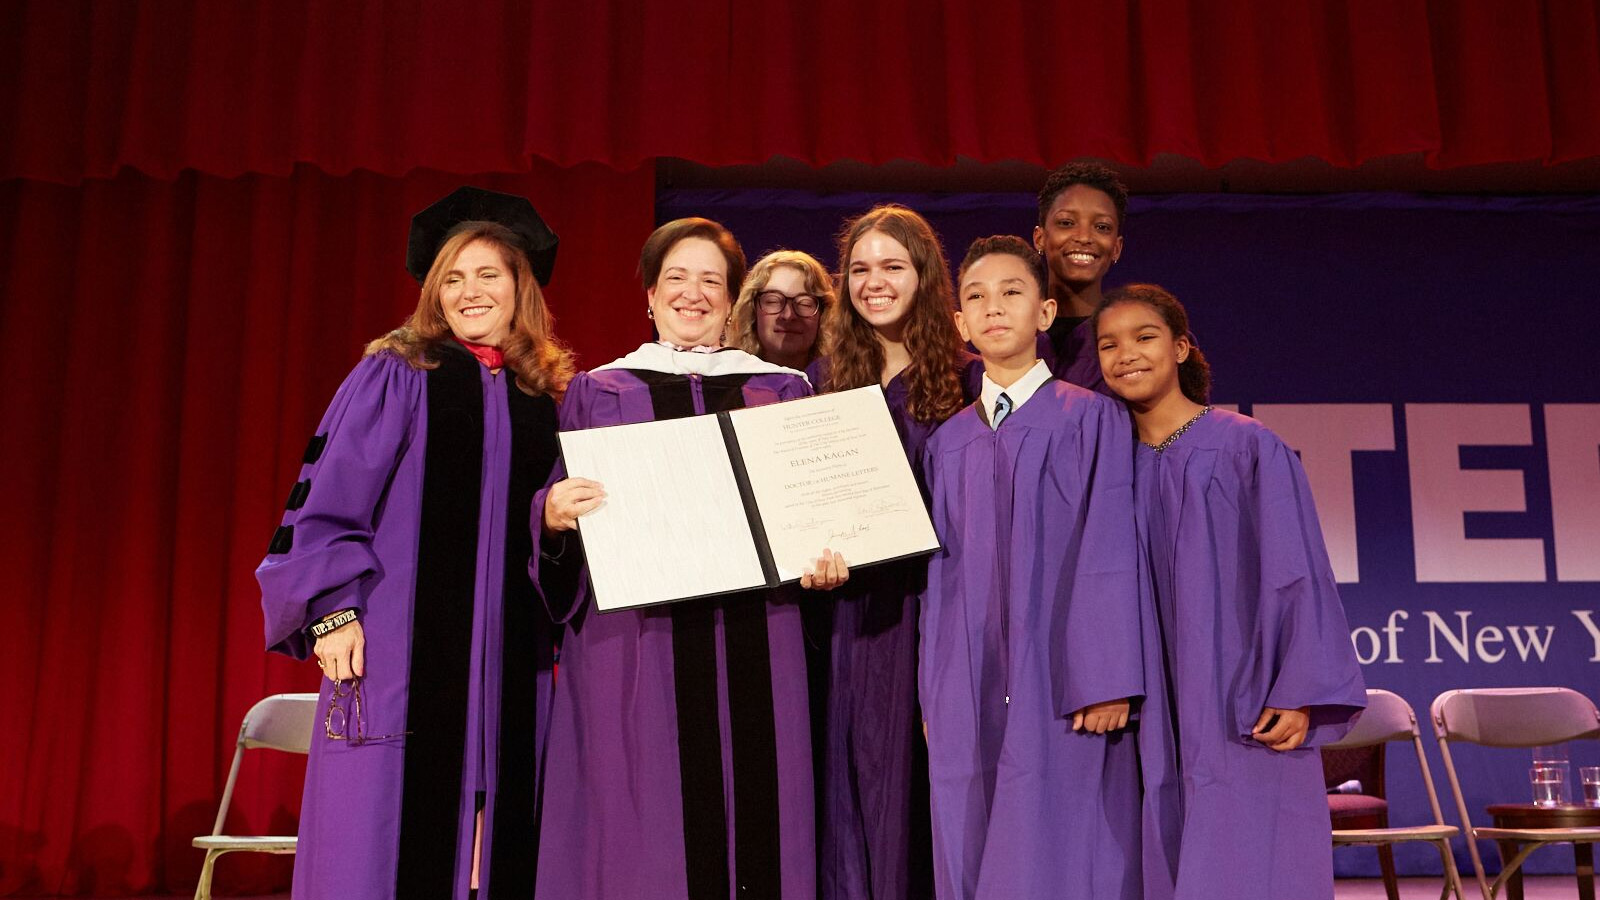 Supreme Court Justice Elena Kagan with students after receiving the honorary Doctorate of Humane Letters